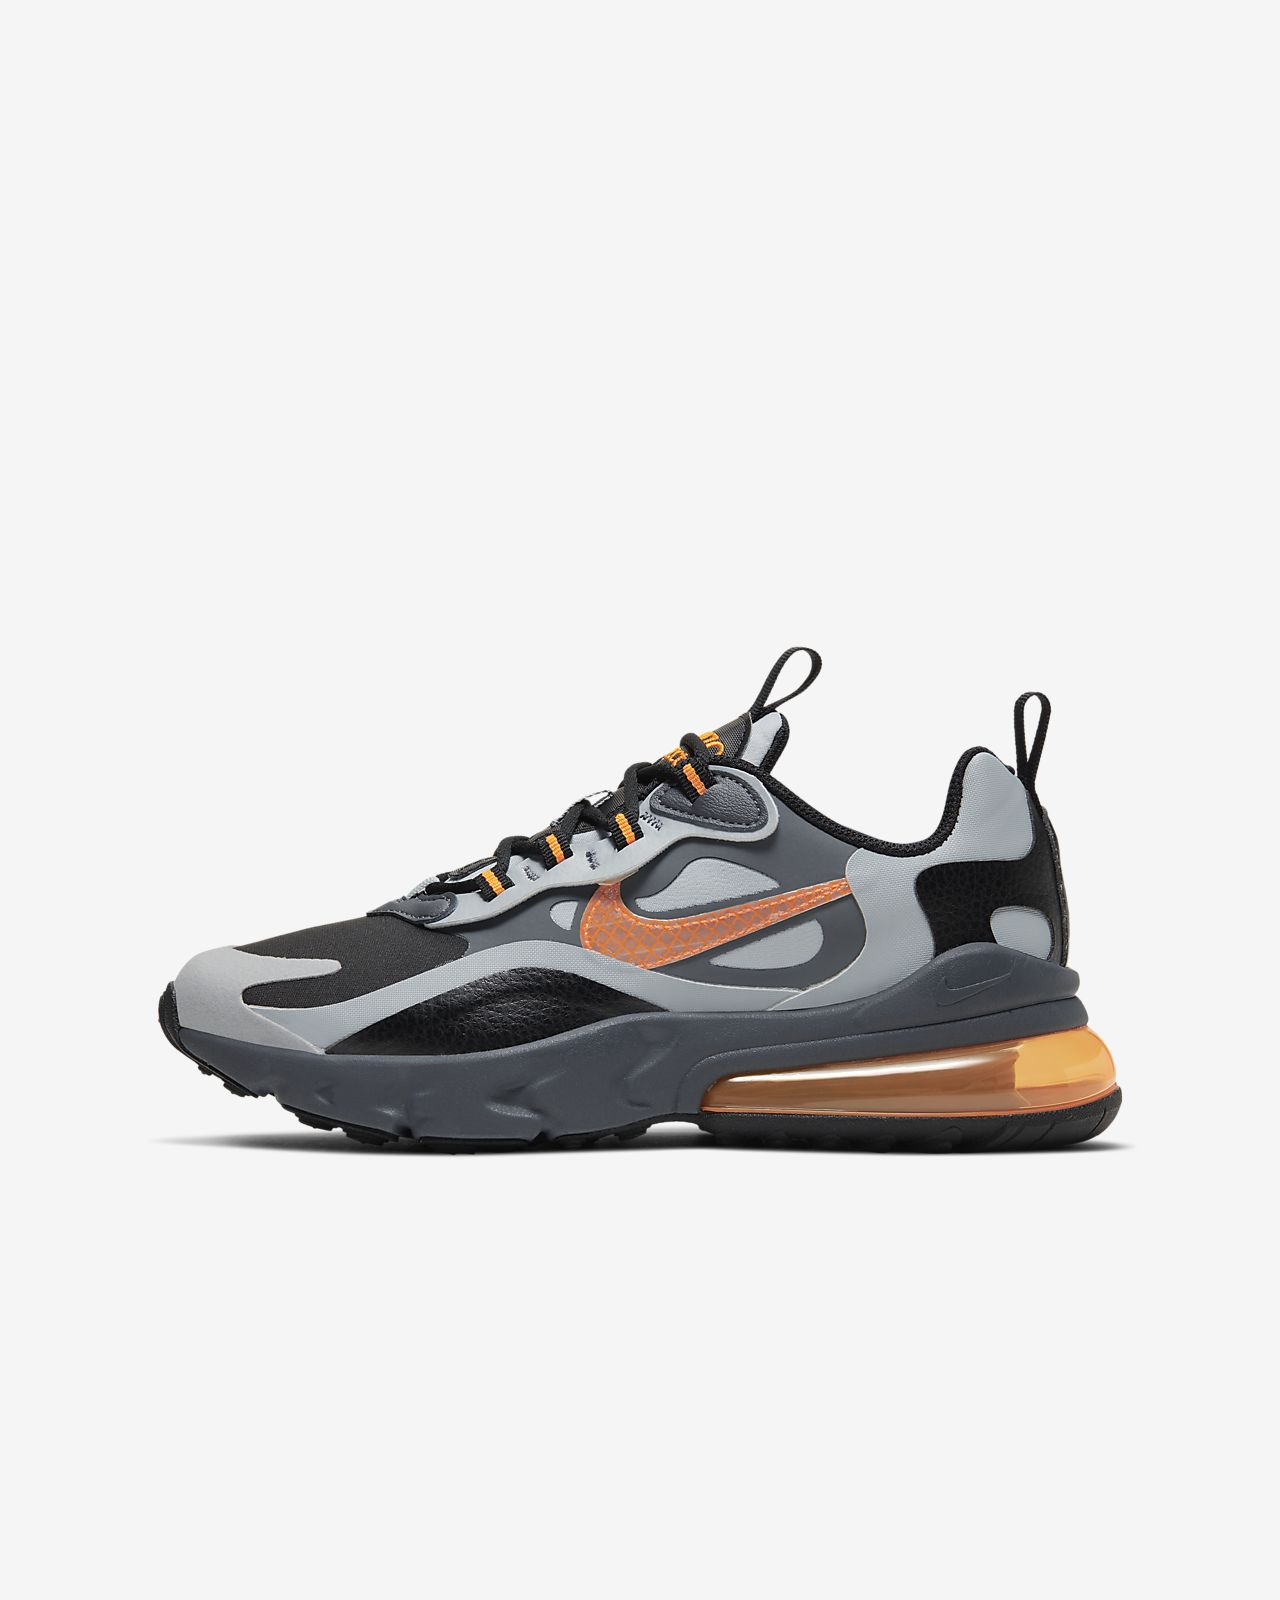 Sapatilhas Nike Air Max 270 React Winter Júnior